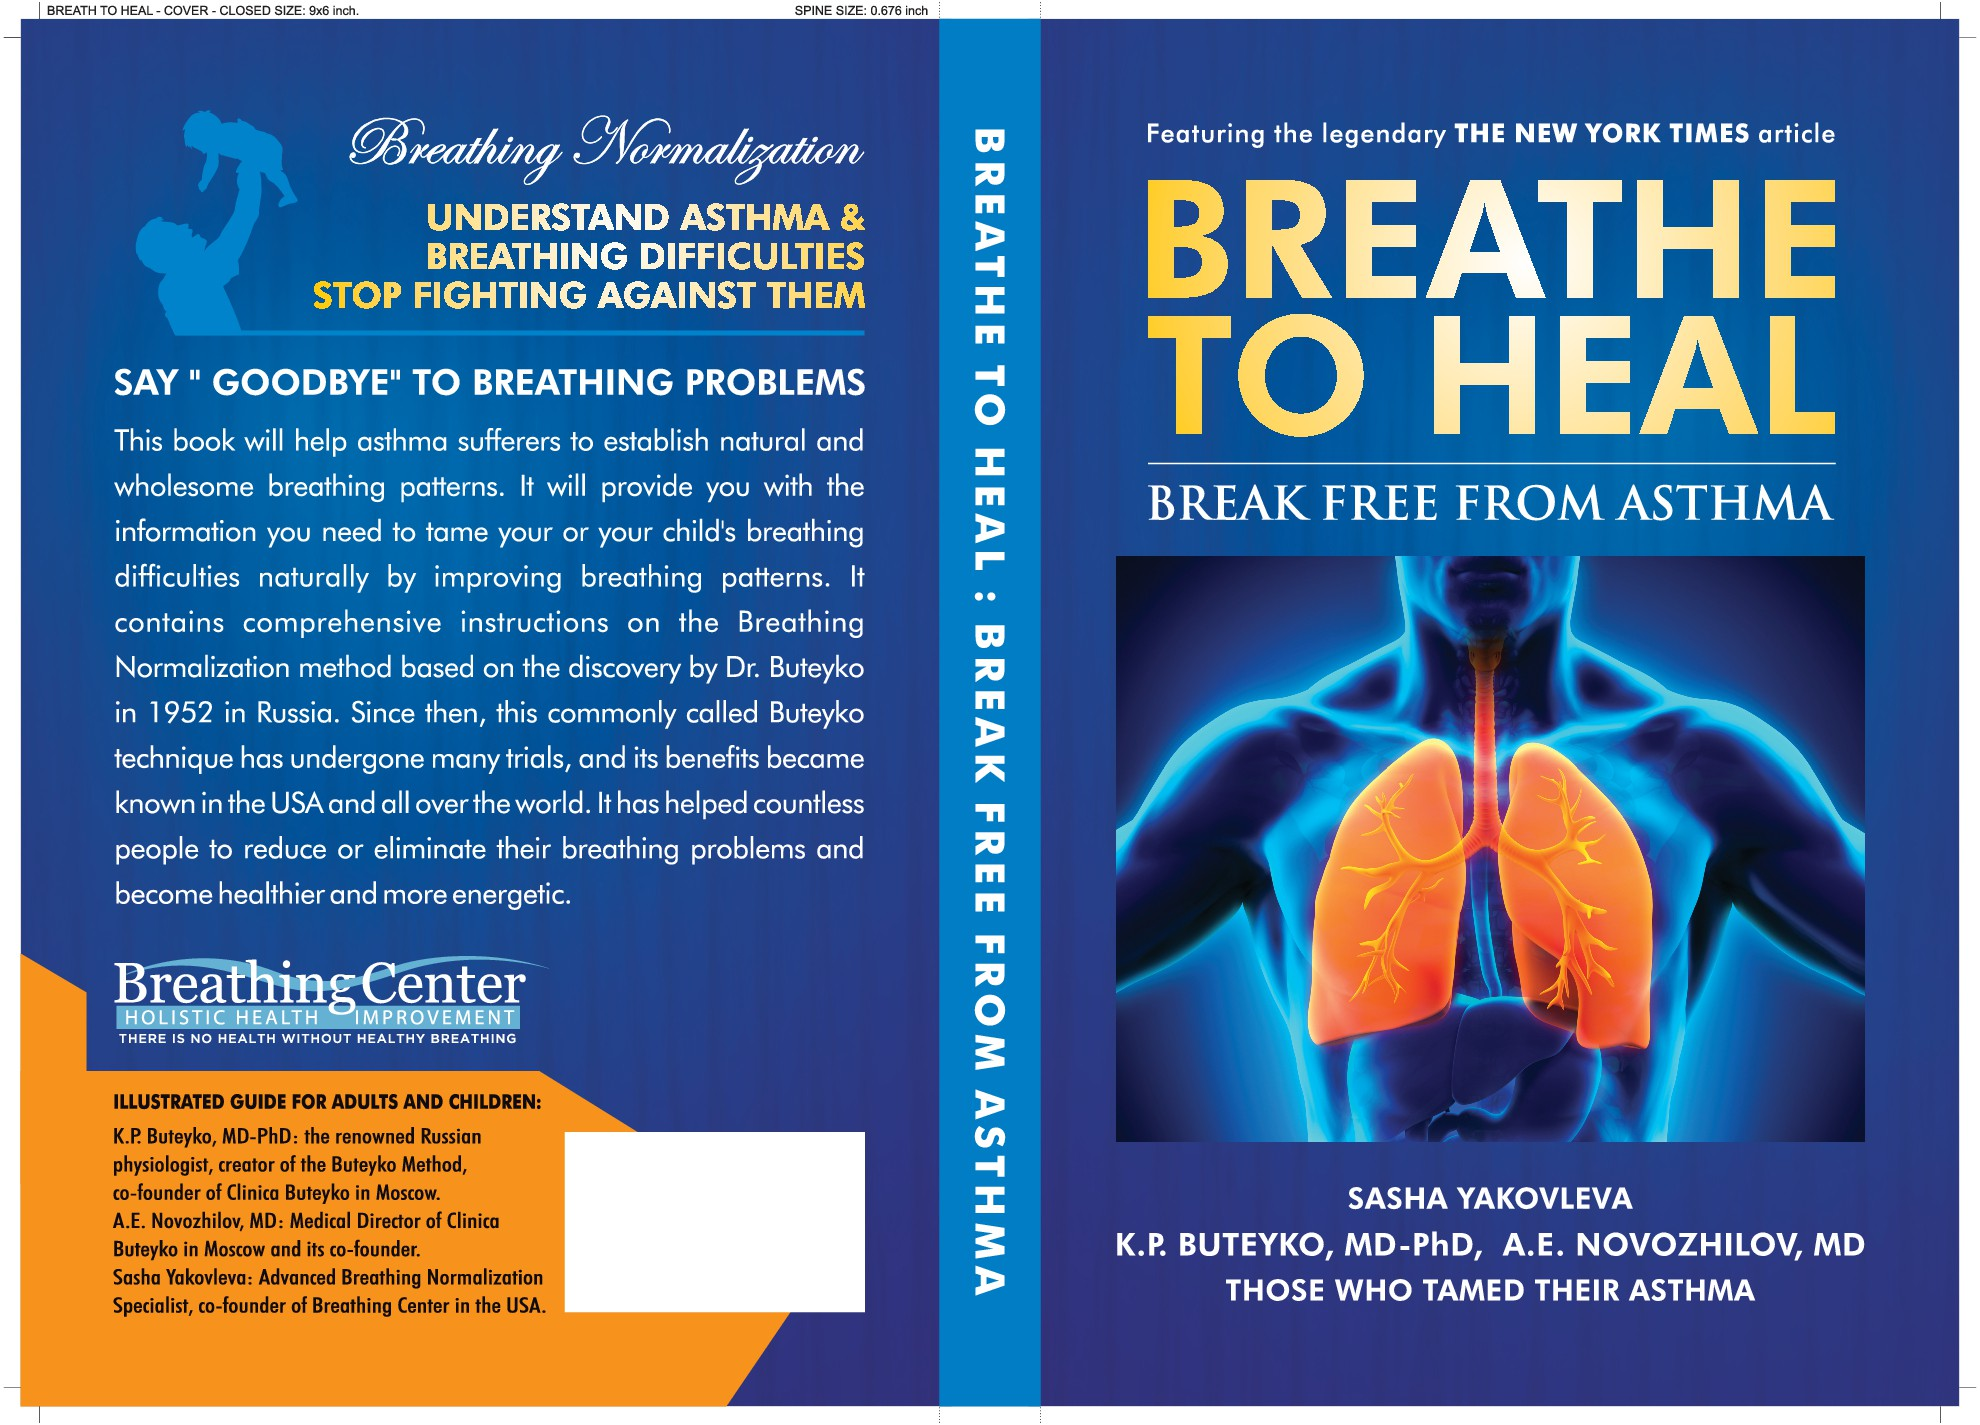 Breathe To Heal: Break Free From Asthma - create a cover for this book!